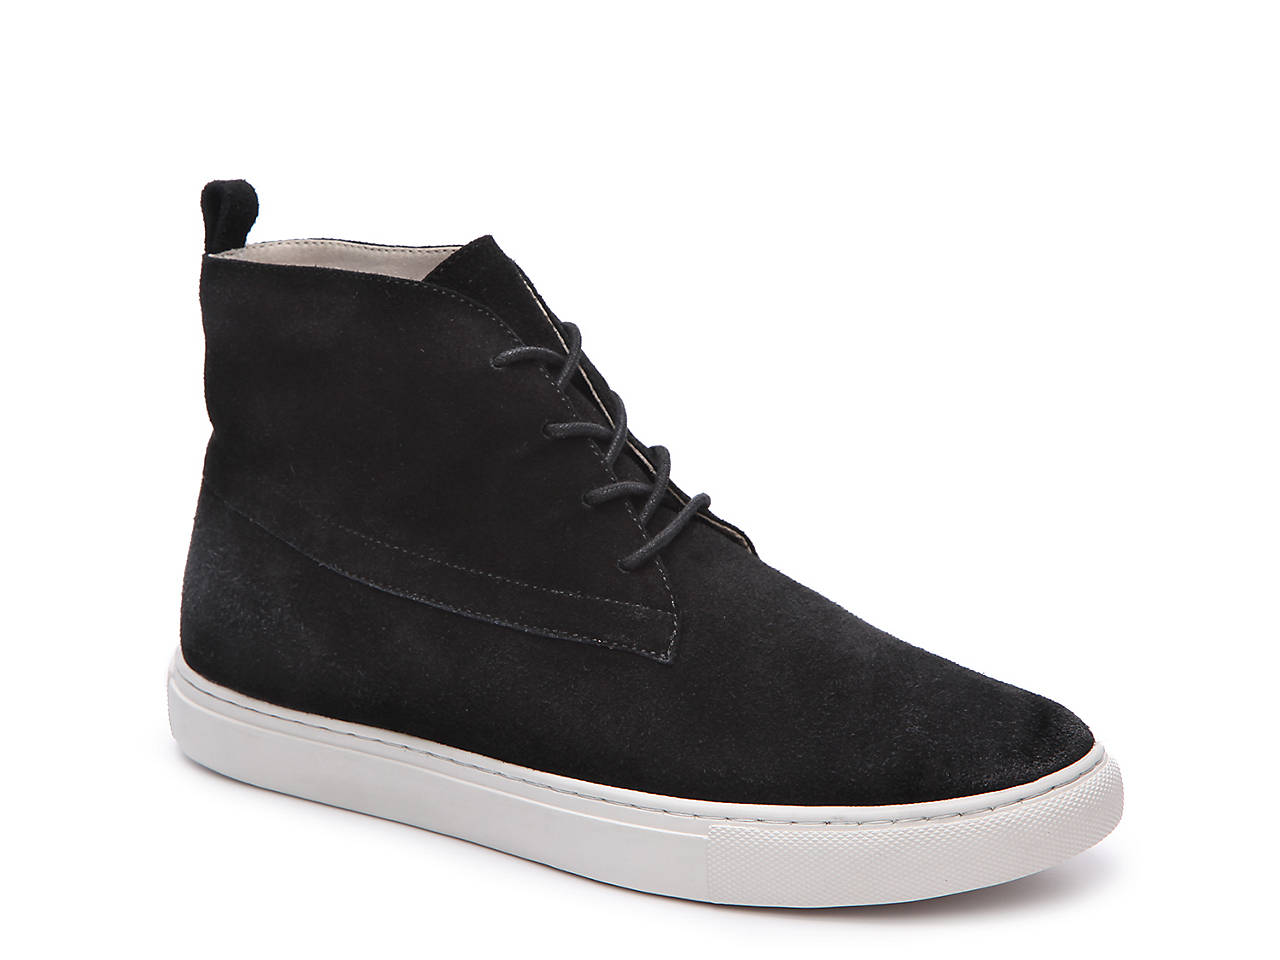 Kenneth Cole New York Kingwood Mid Sneaker